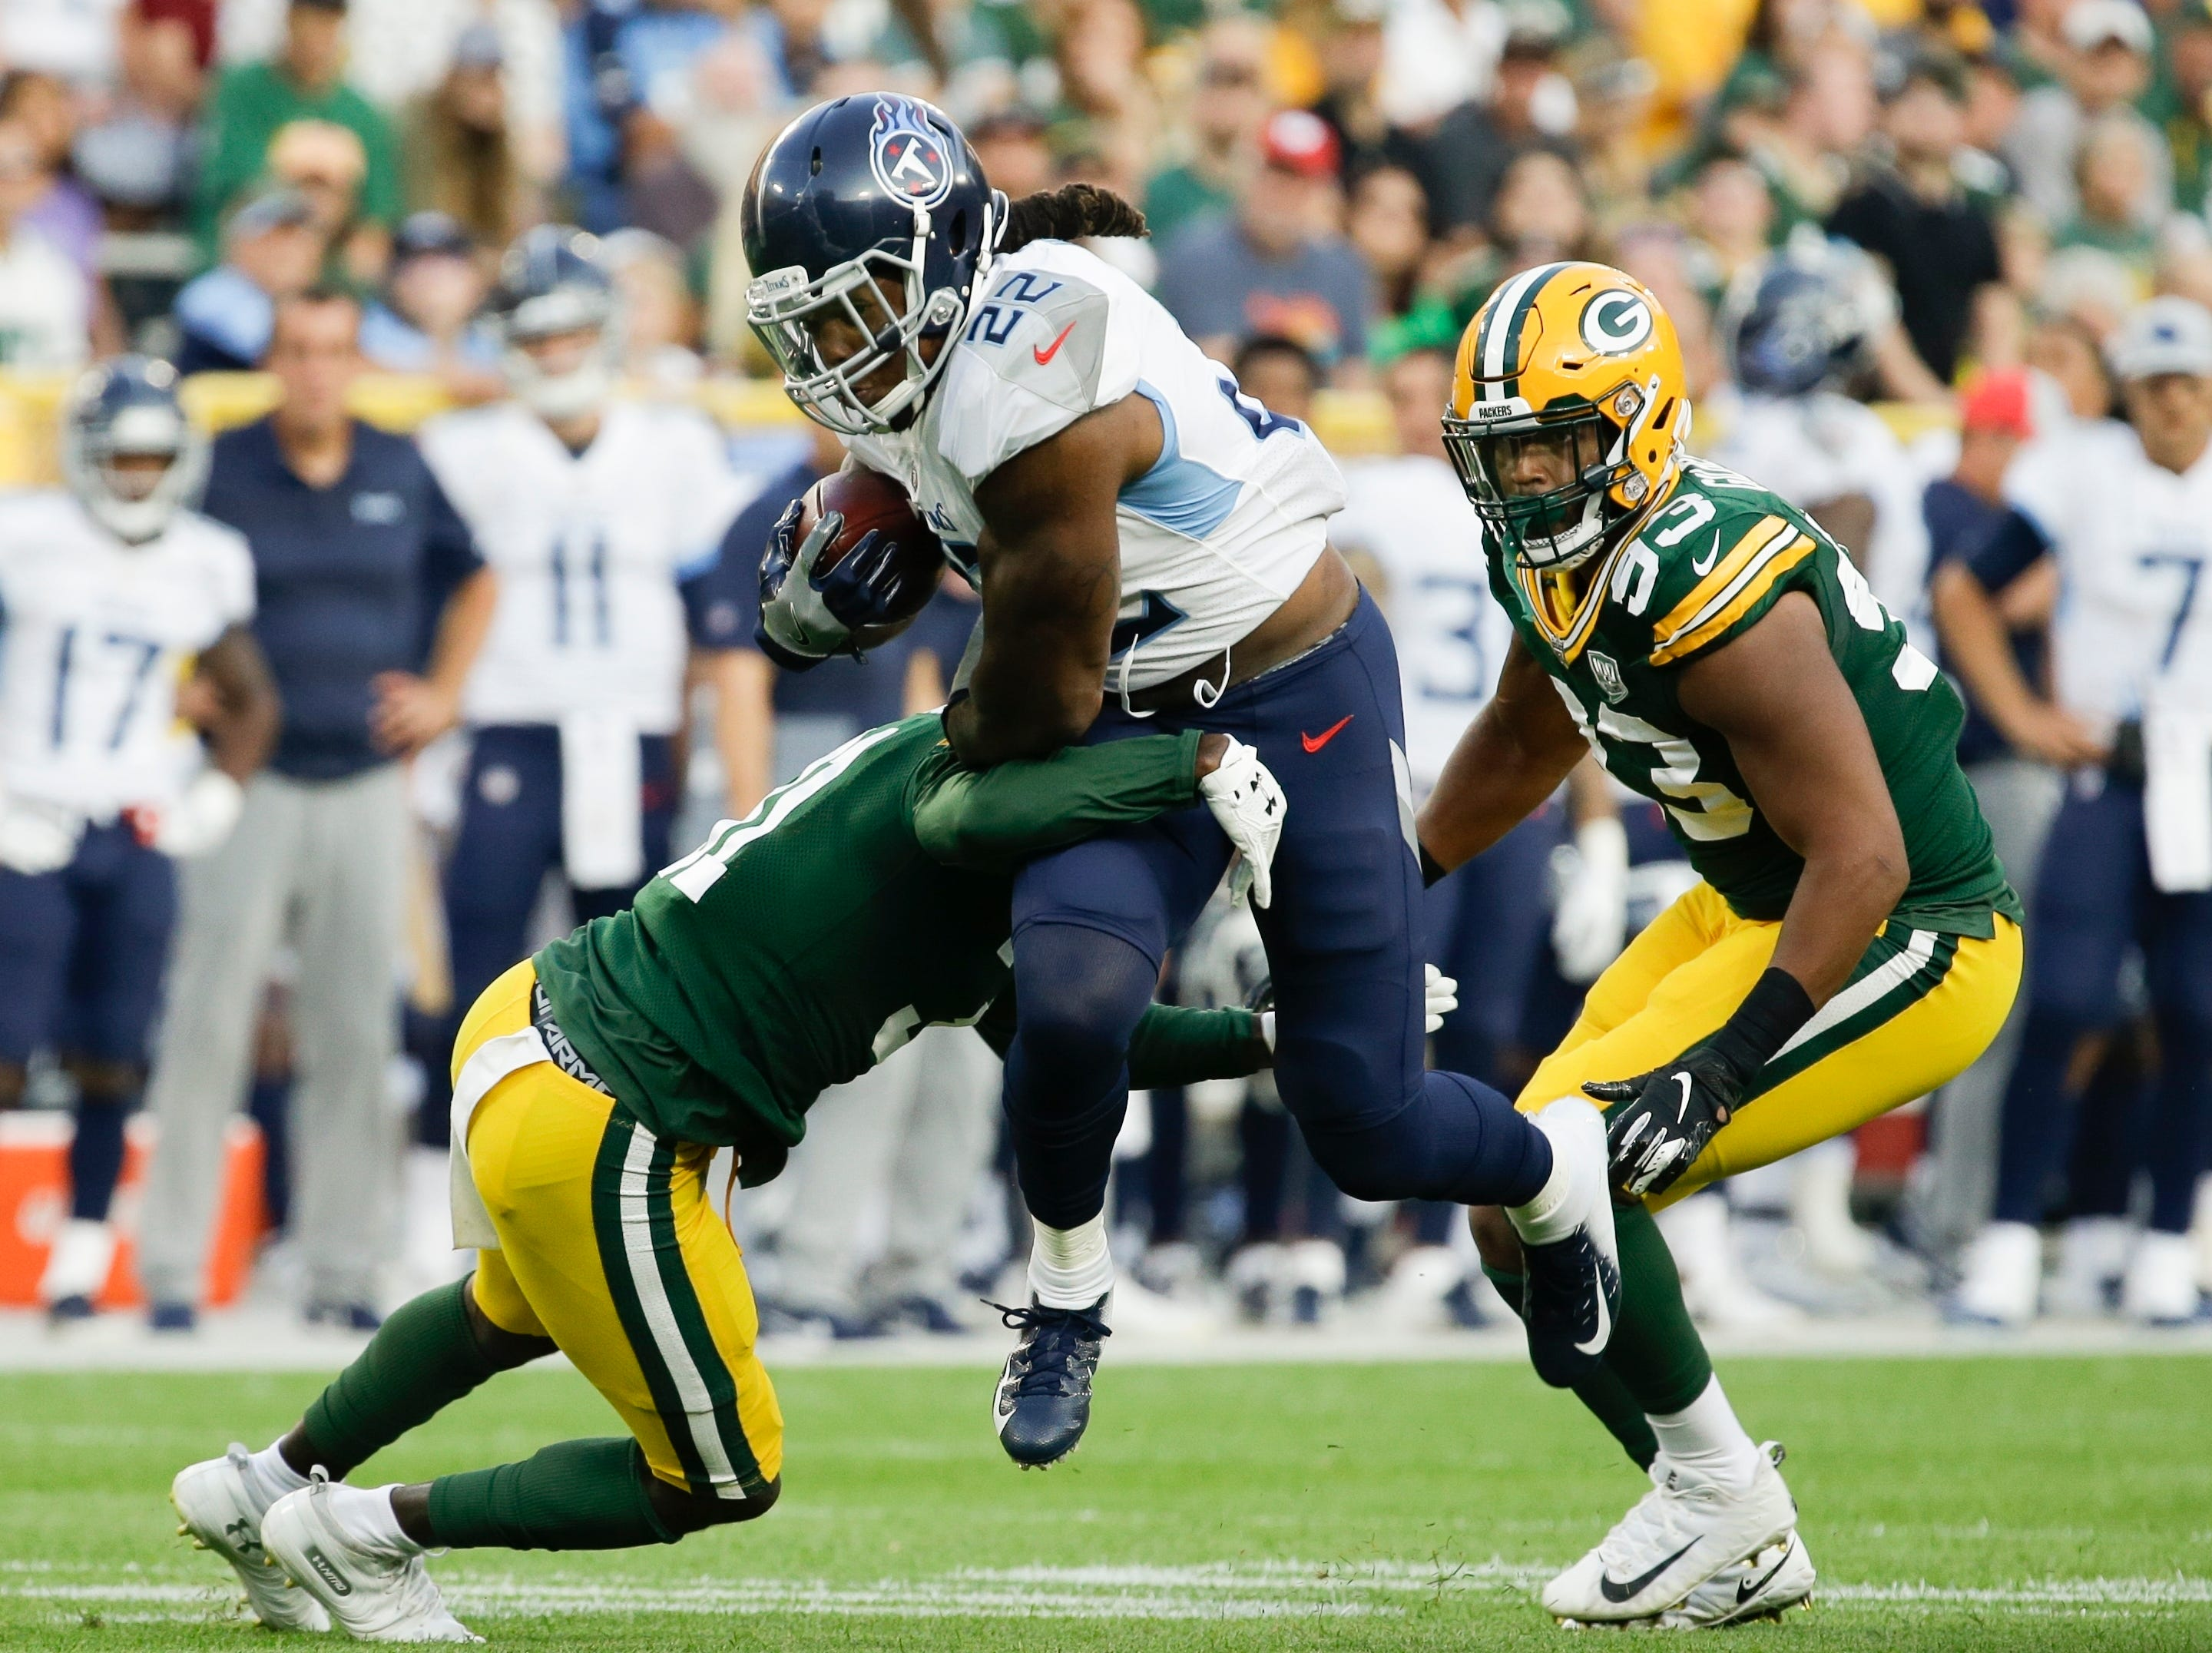 Tennessee Titans' Derrick Henry runs during the first half of a preseason NFL football game against the Green Bay Packers Thursday, Aug. 9, 2018, in Green Bay, Wis. (AP Photo/Mike Roemer)